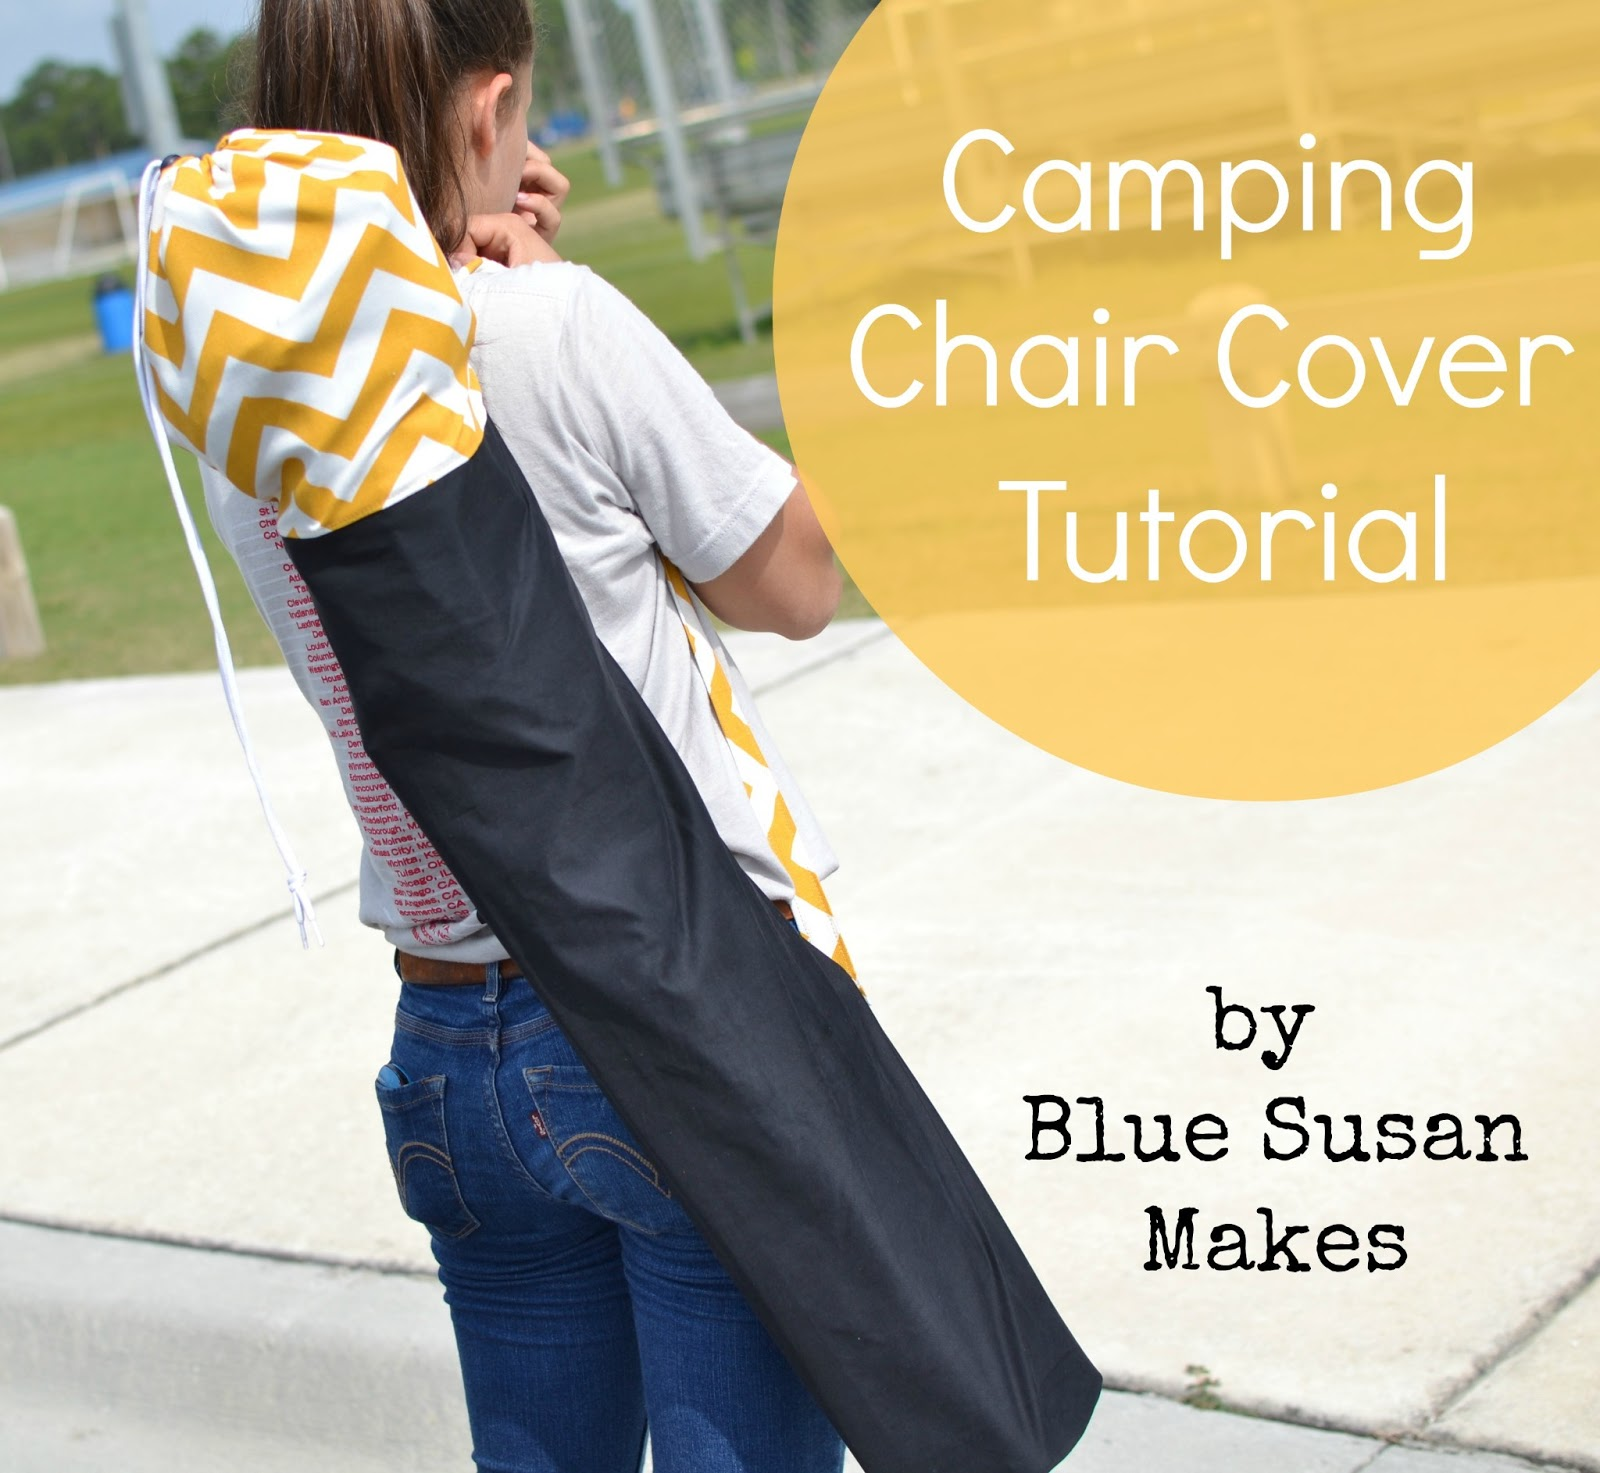 Soccer Mom Covered Chairs Diy Kids Chair Blue Susan Makes I Am A Camping Cover The Have Is Cheap Kind From Walmart Made Just Little Bigger Than First One So Easier To Get In And Out